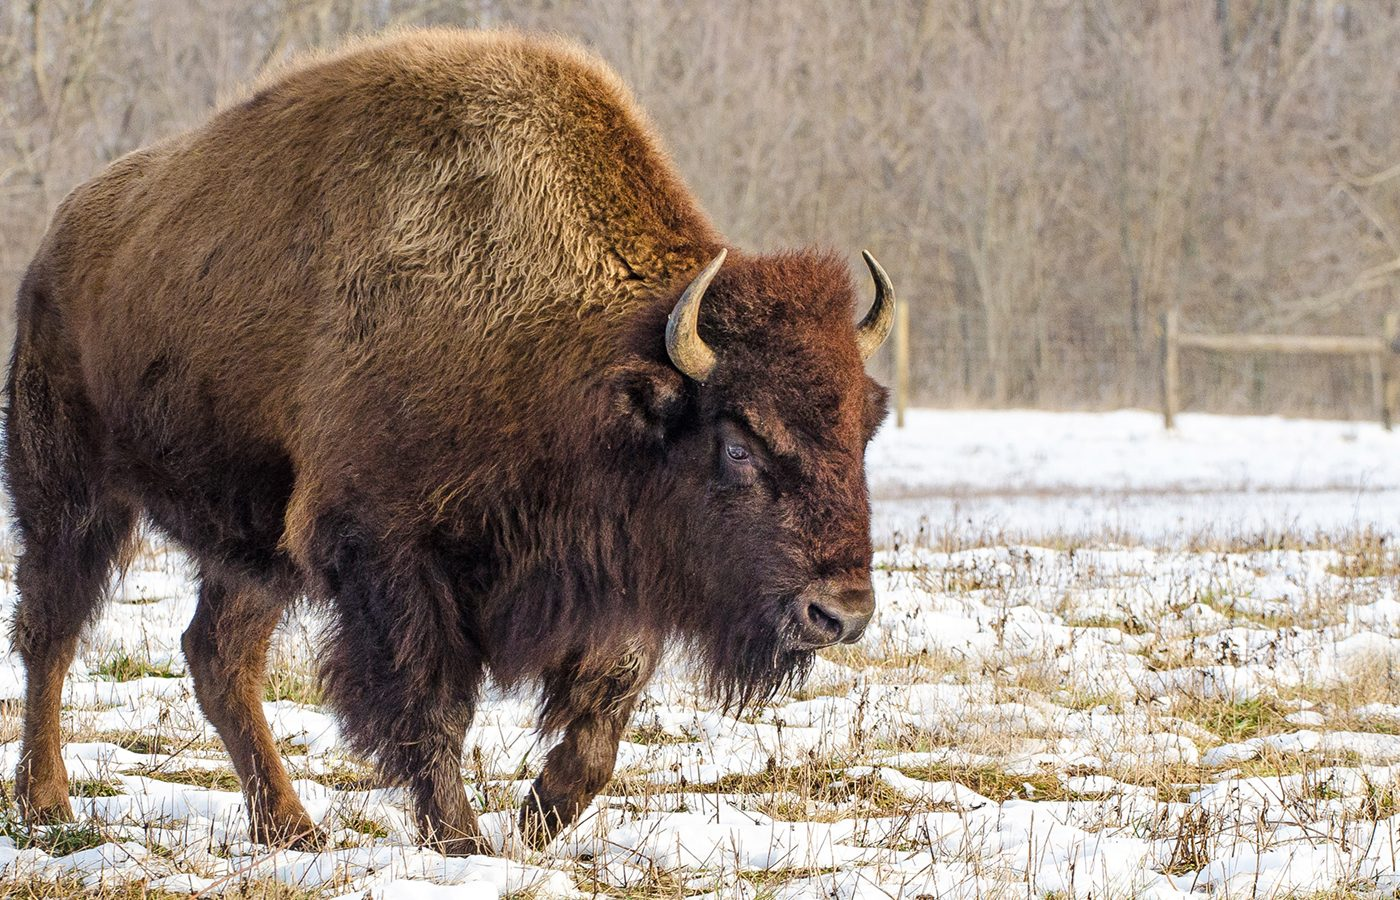 Buffalo in snow at Battelle Darby Creek